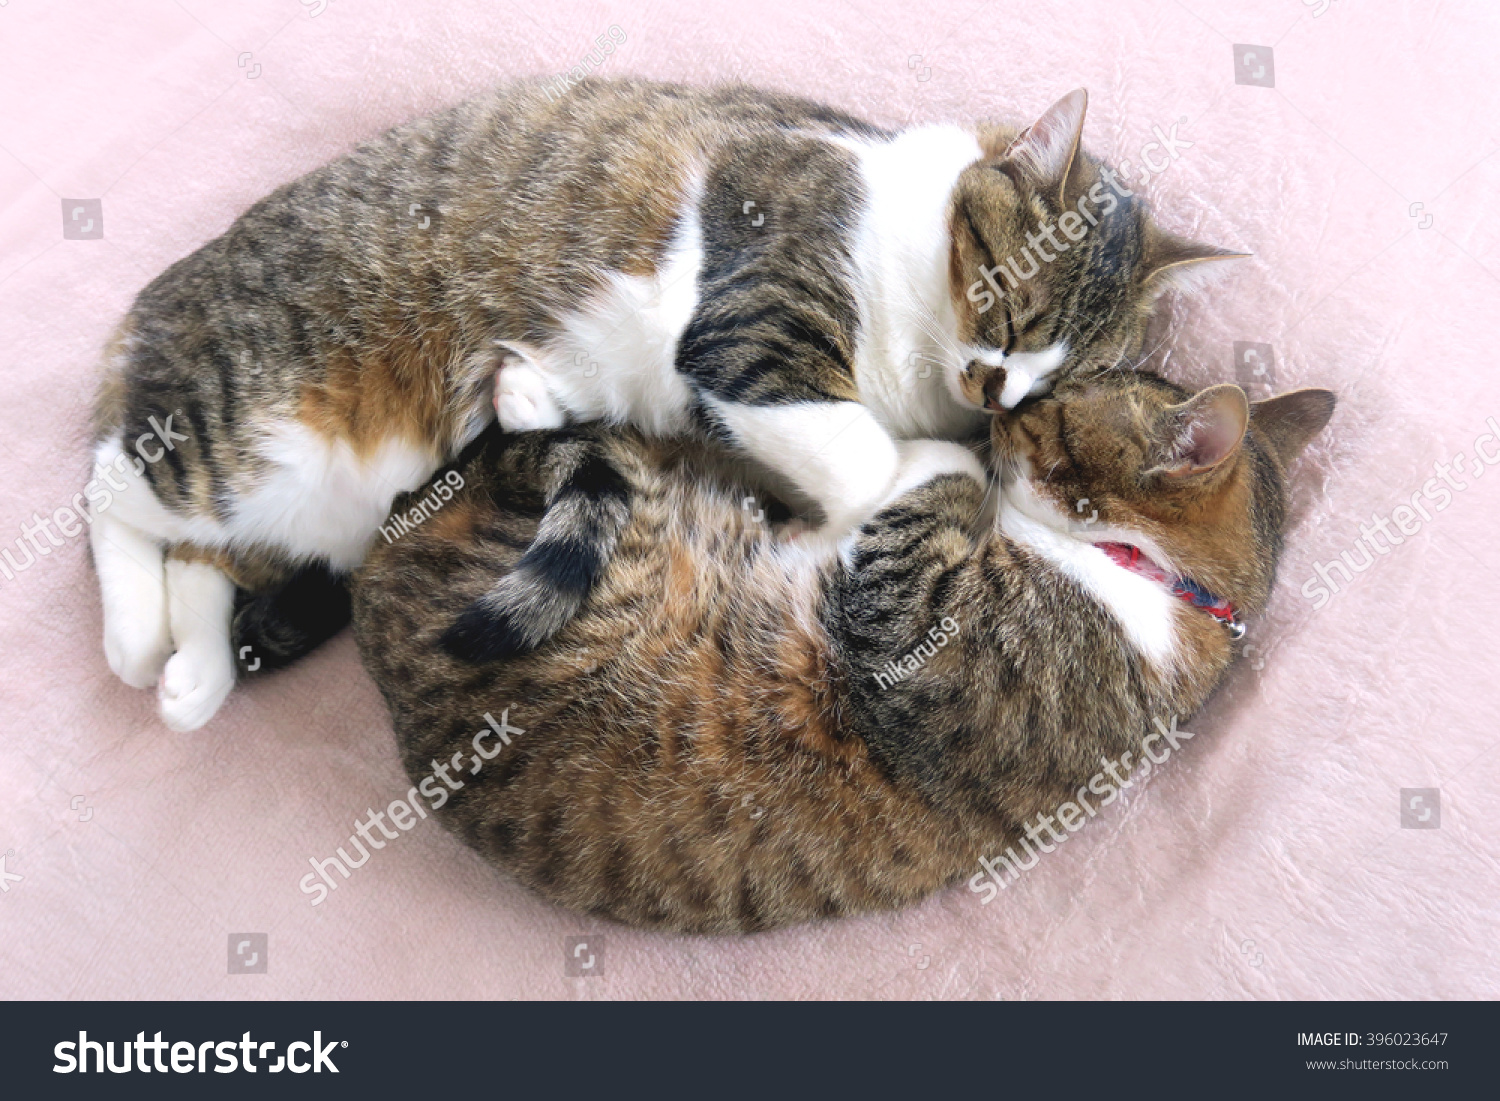 Two Cats Sleeping Together Pronunciation Japanese Stock Photo Edit Now 396023647